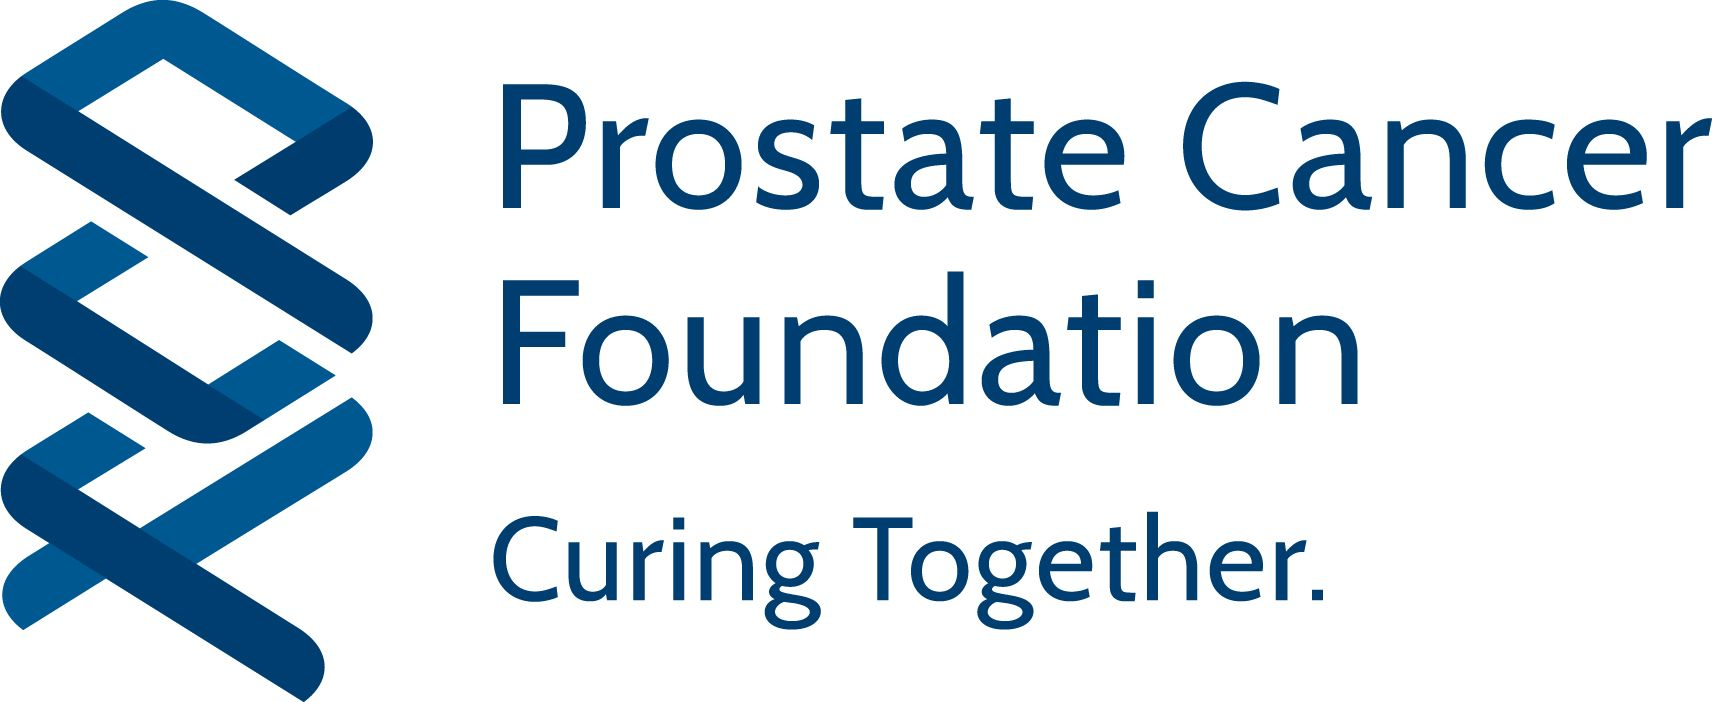 Advocacy Groups | <b>Prostate Cancer Foundation</b>